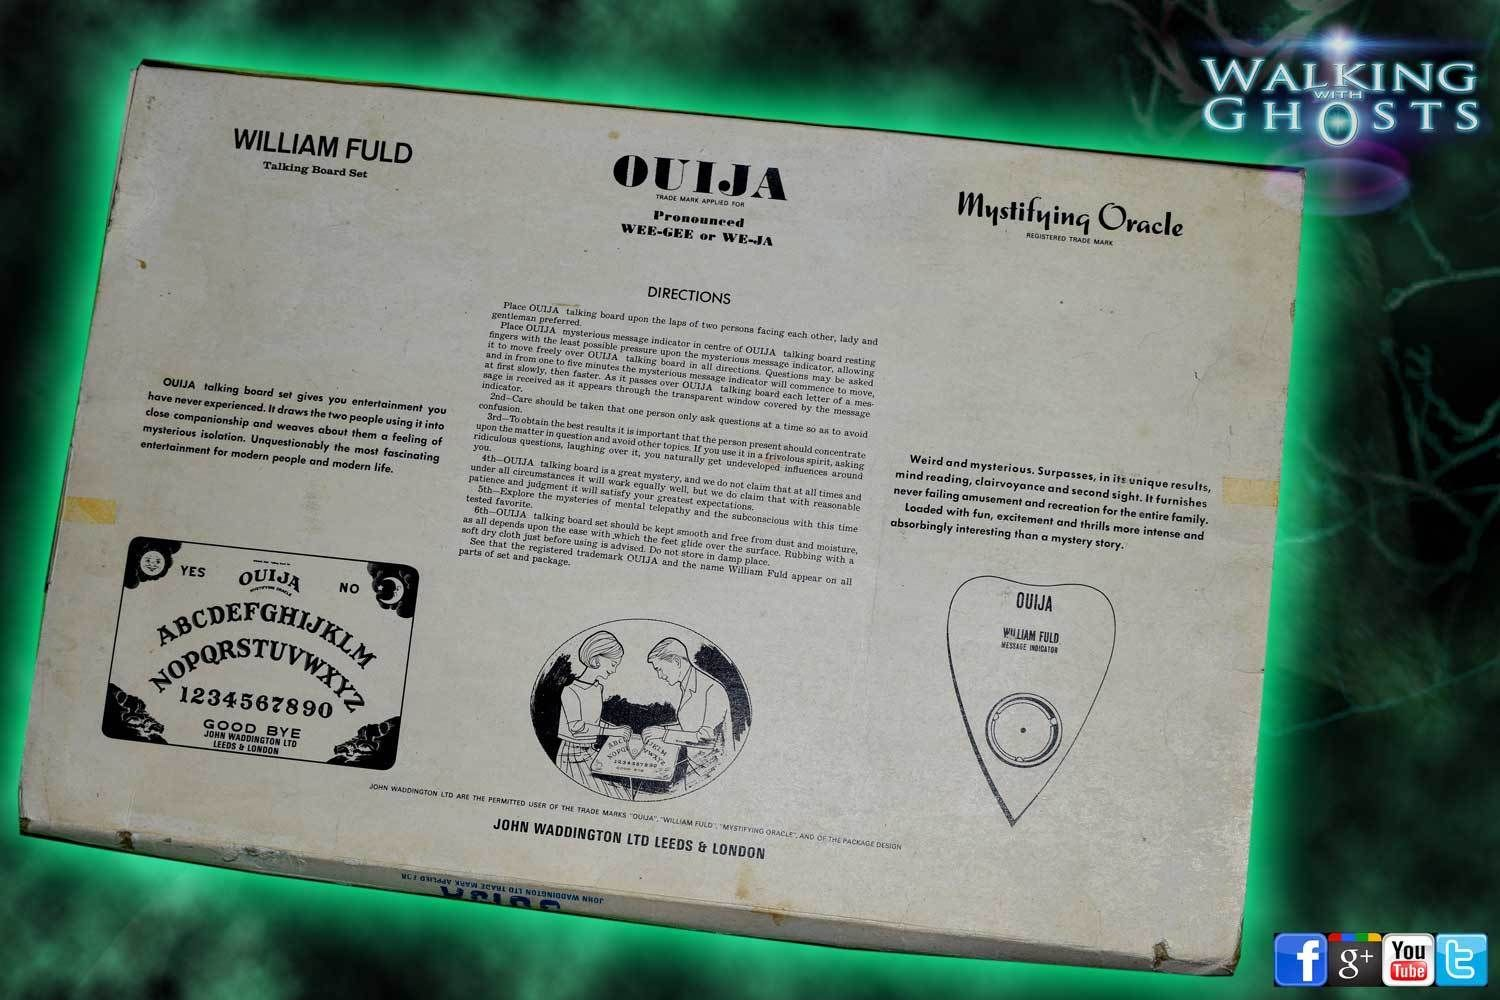 ouija board instructions at home